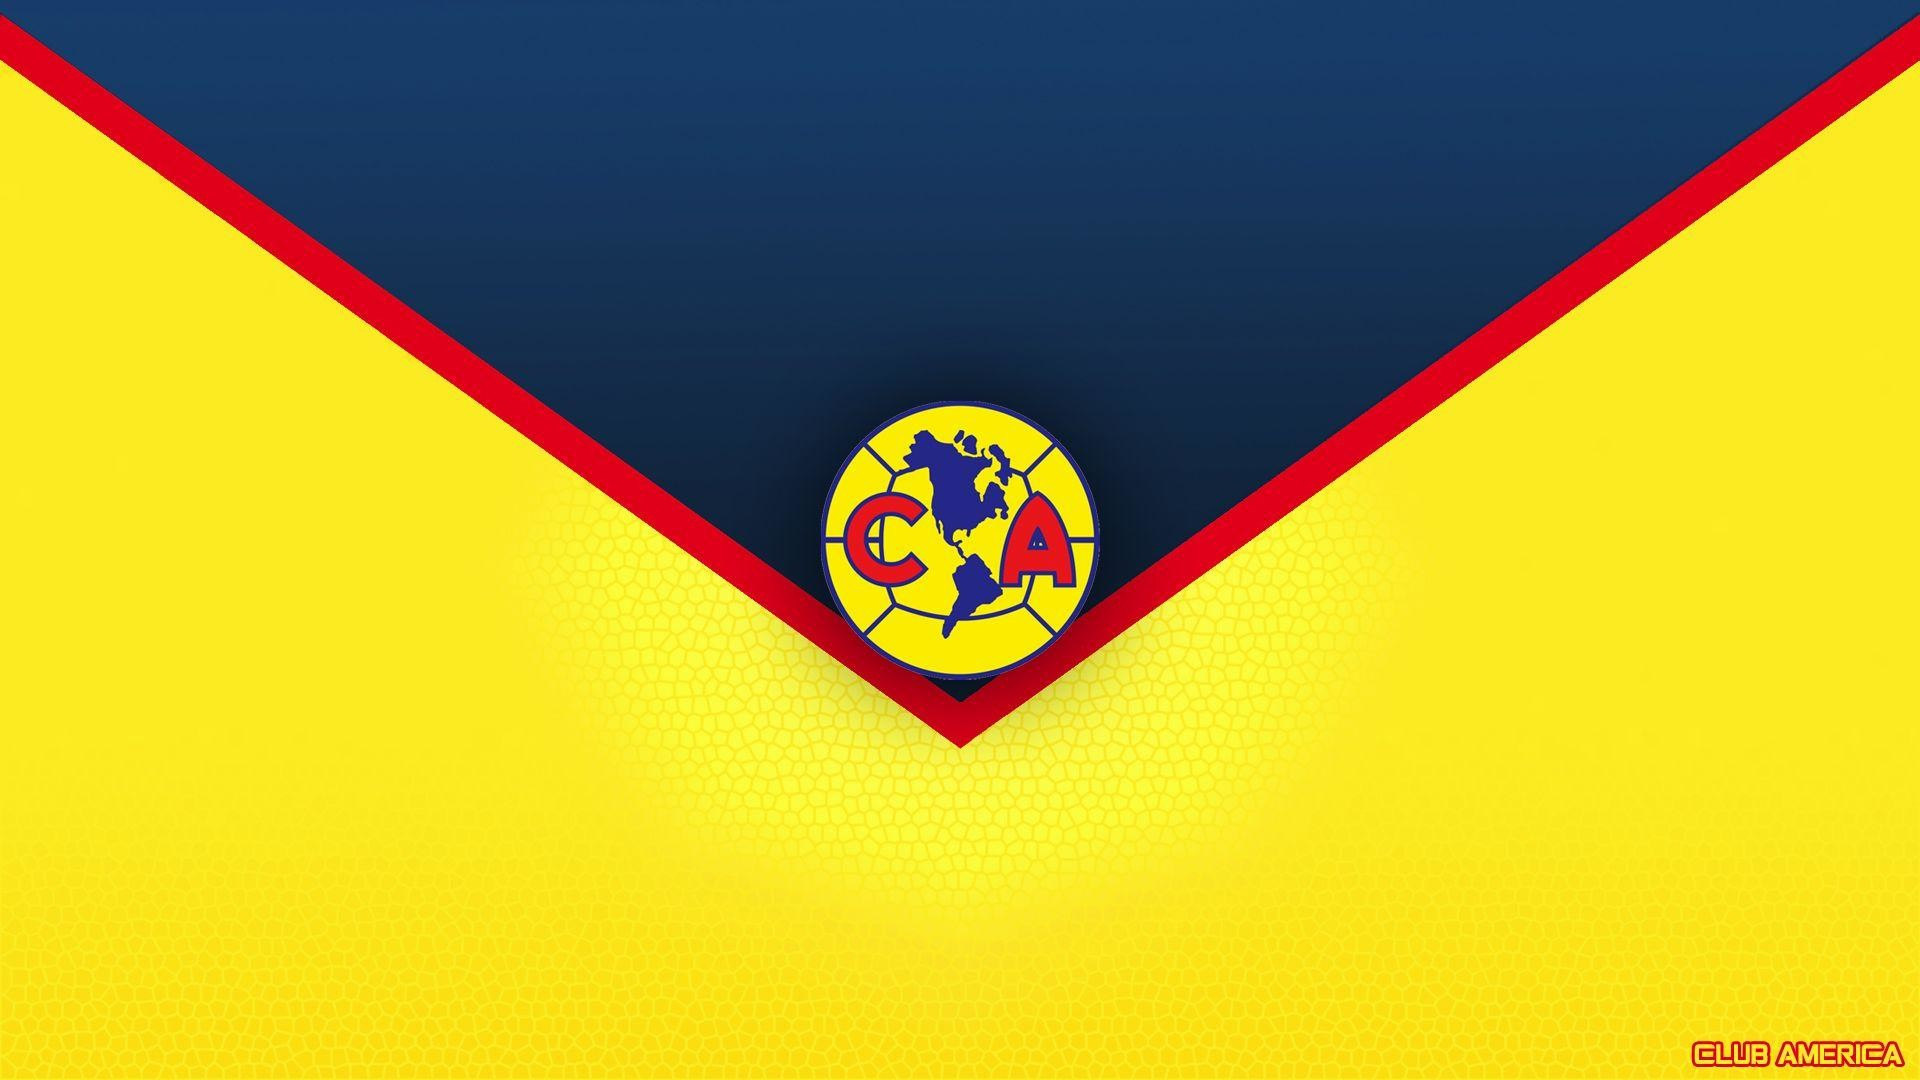 wallpaper.wiki-Club-America-Images-PIC-WPC005807